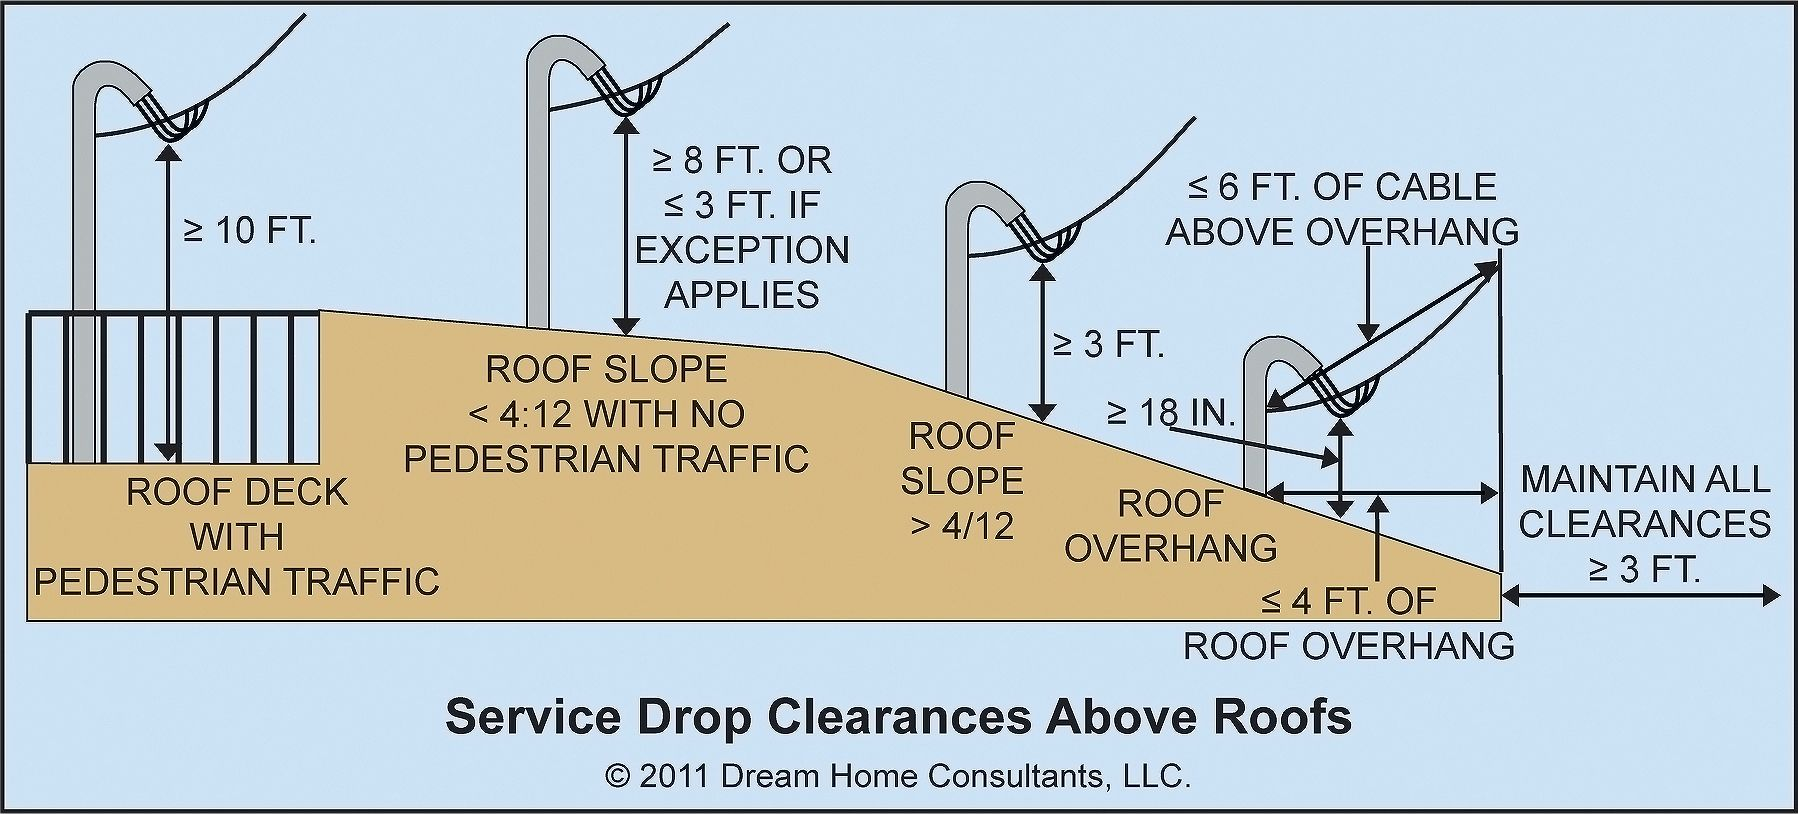 Service Drop Clearances and Installation | Home Owners Network. Service drop must be well supported & have appropriate clearance above ground, sidewalk, or driveway so does not touch anything when wind blows. •	The lowest point of drop must clear ground by at least 10 ft. •	Any surface where a vehicle passes, such as a driveway, the lowest point must be at least 12 feet above the surface. •	There must be at least a 3-ft clearance from roof.